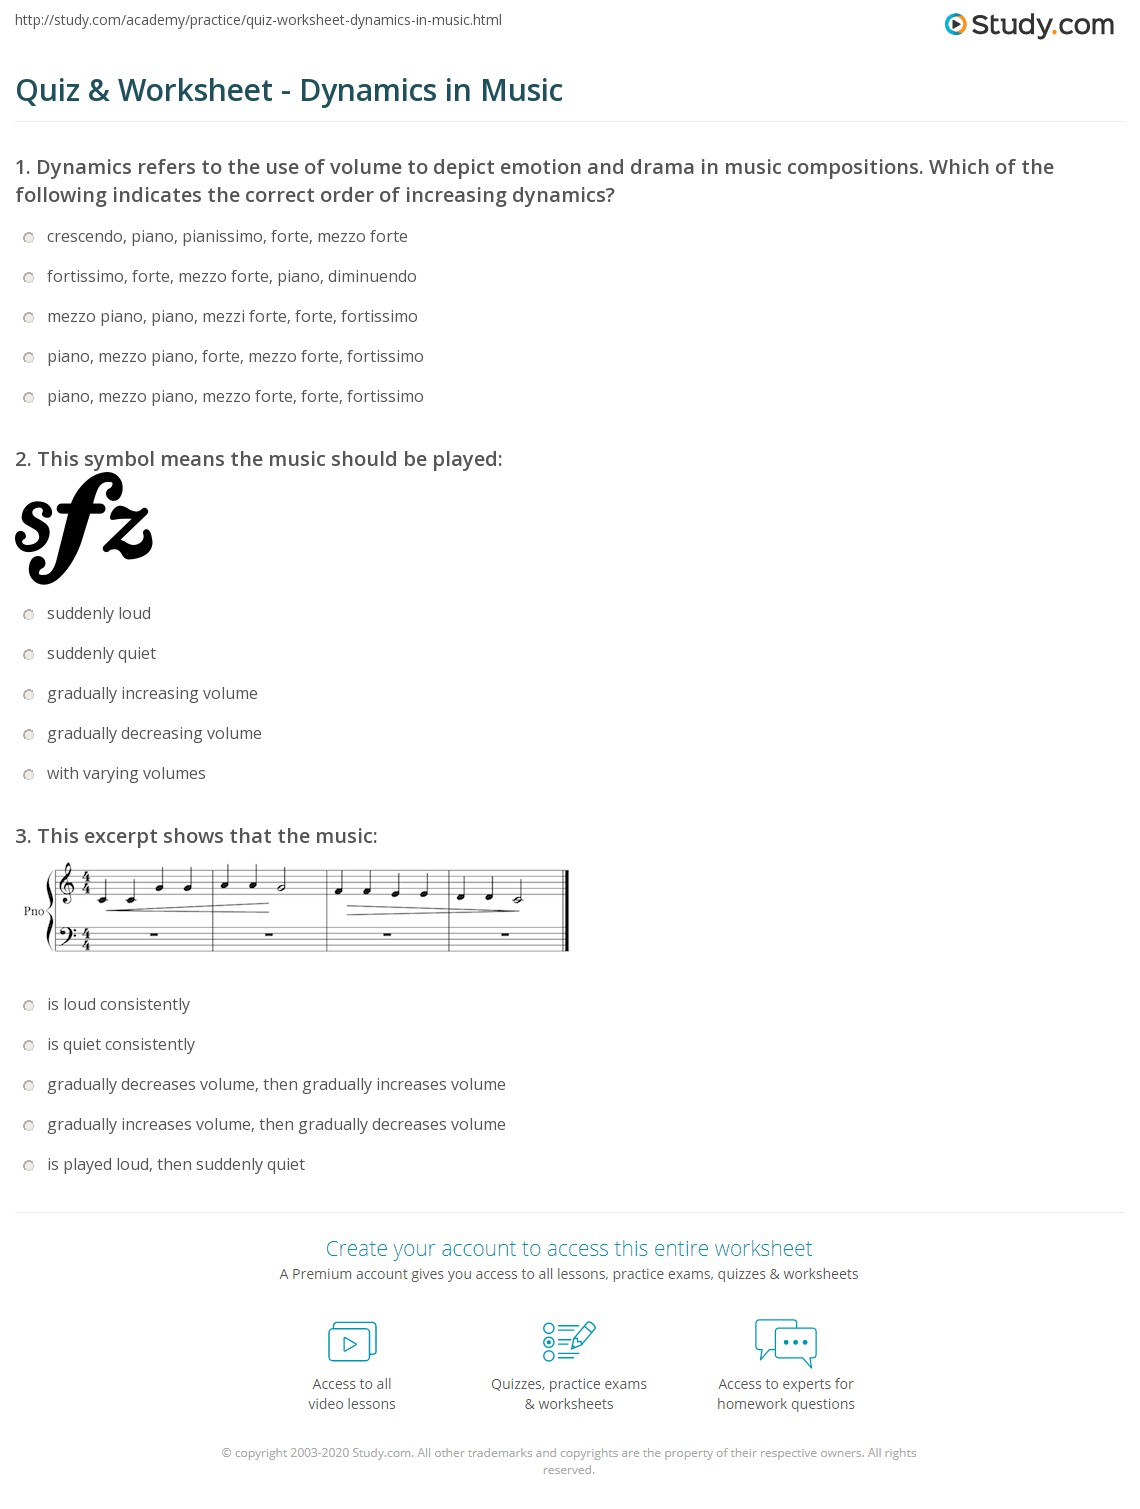 Quiz worksheet dynamics in music study print dynamics in music piano forte and why they are important worksheet buycottarizona Choice Image